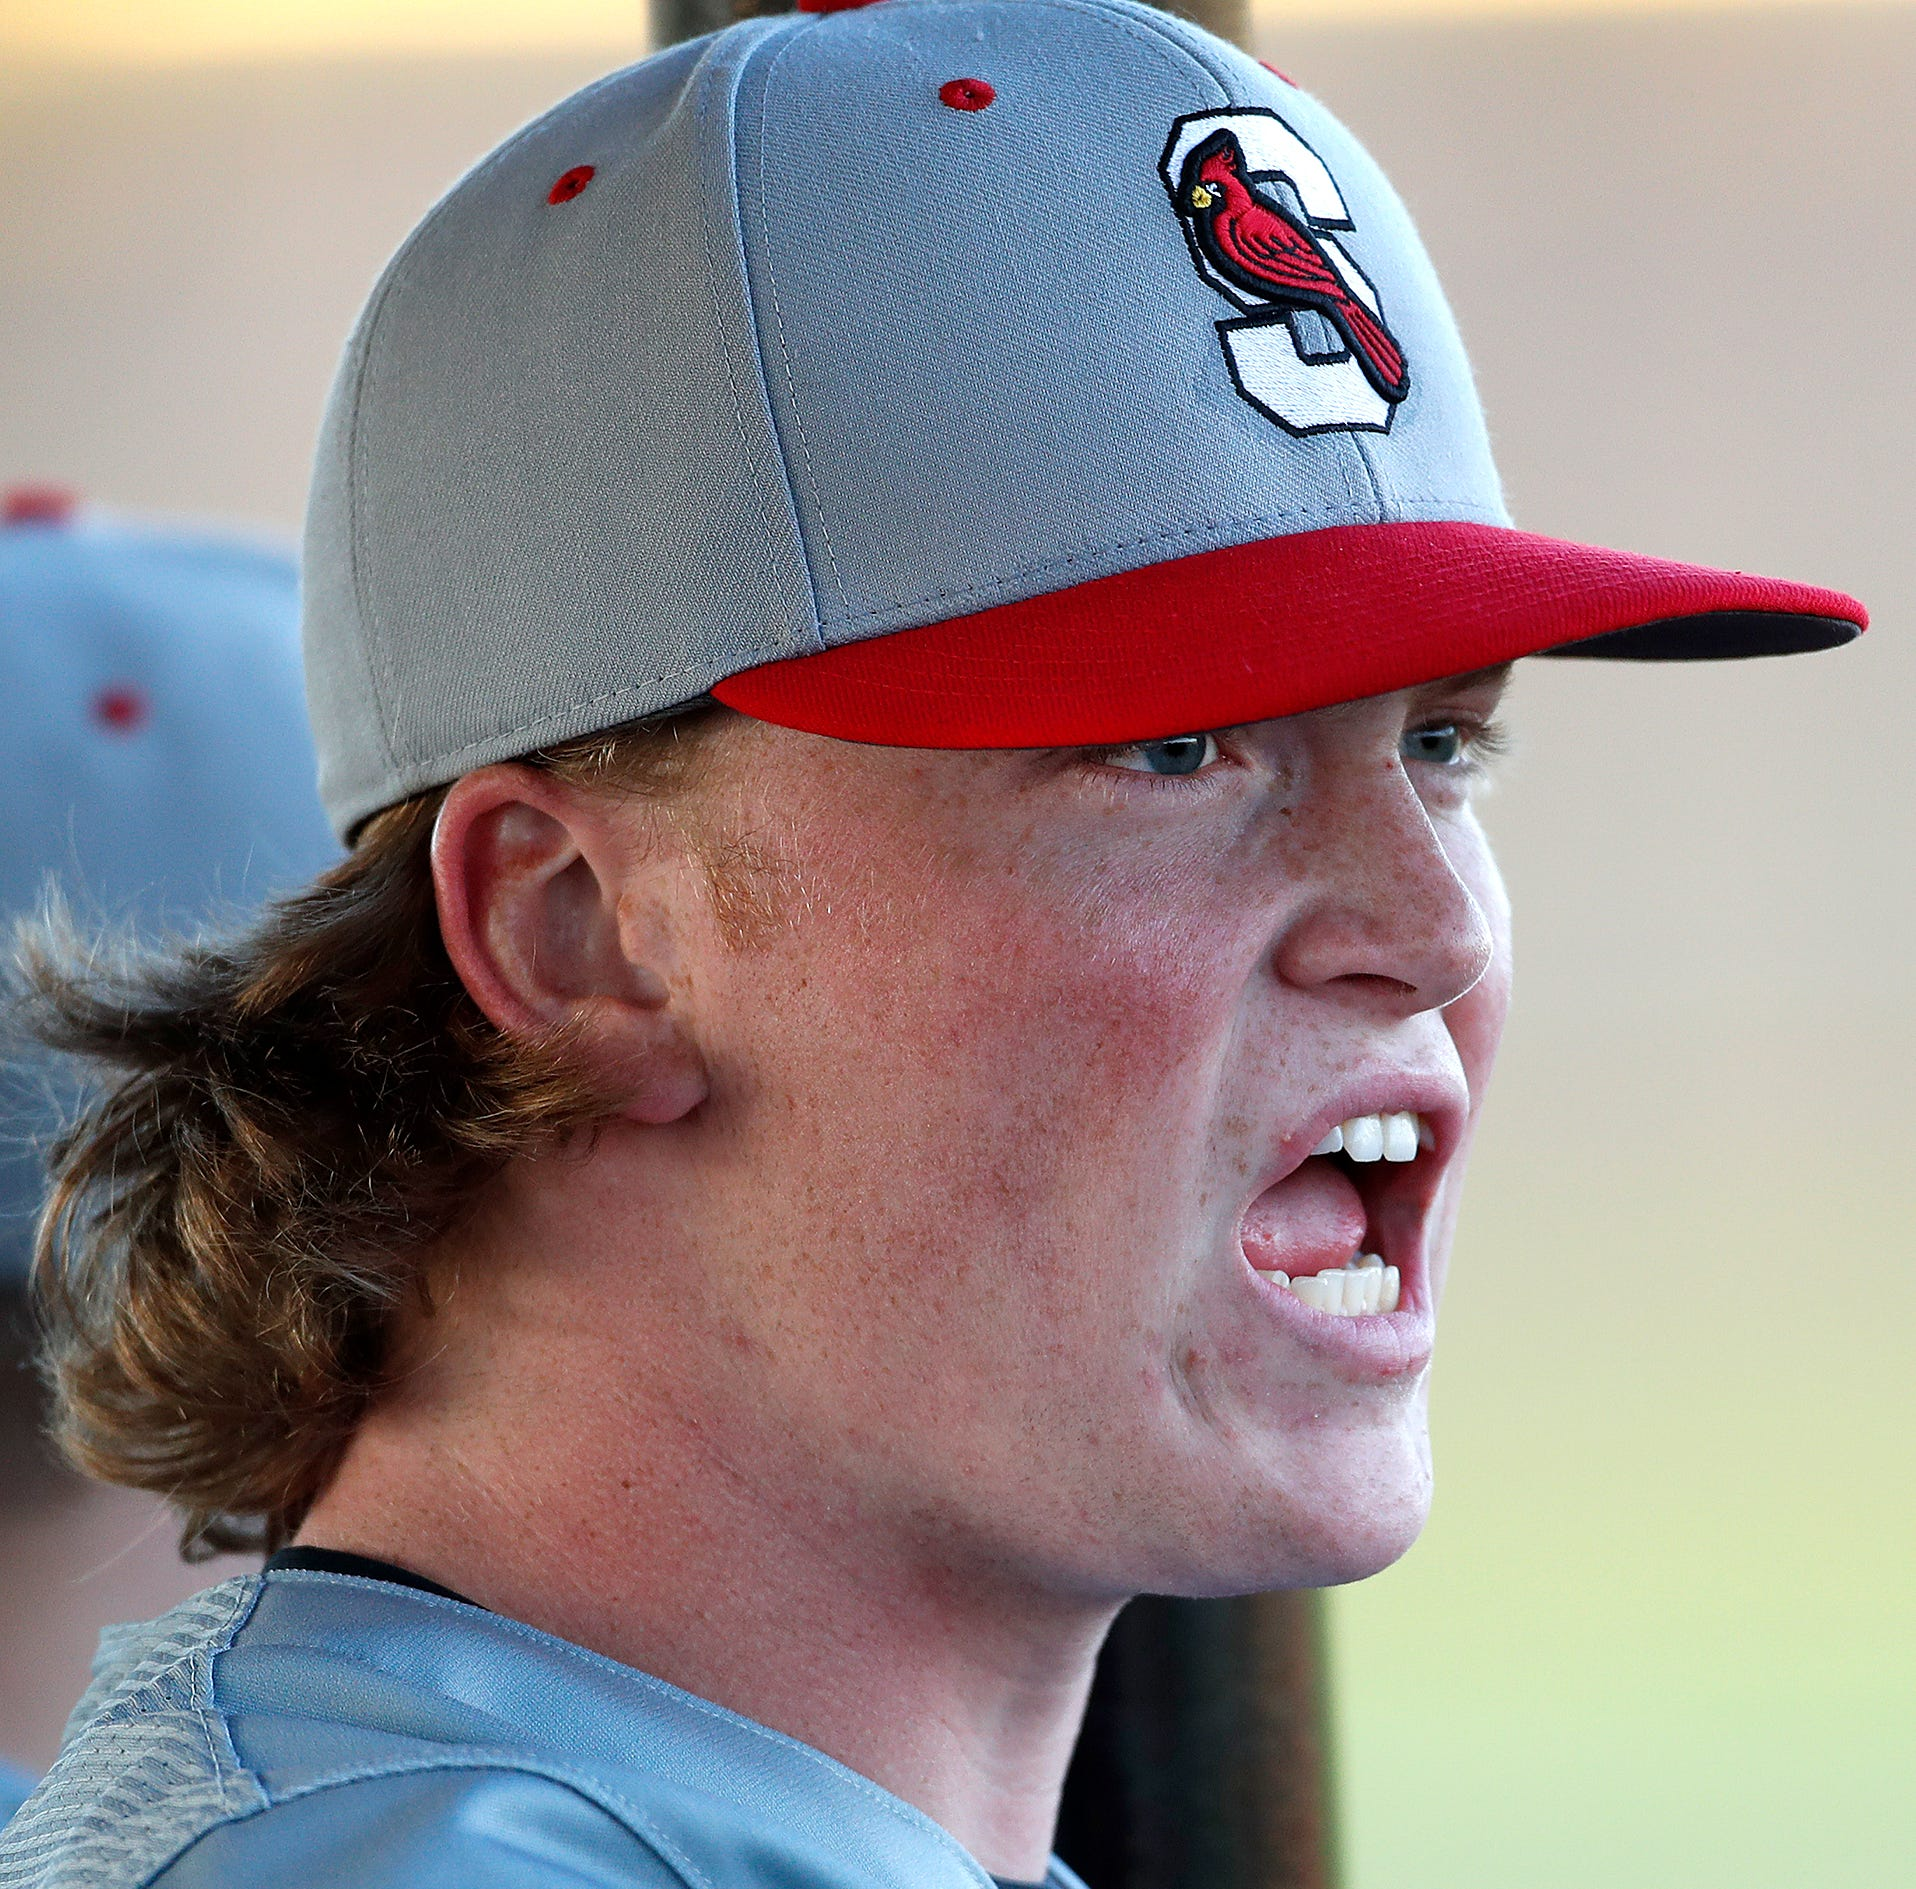 Southport pitcher Avery Short catches MLB scouts' attention with his calm demeanor and five killer pitches